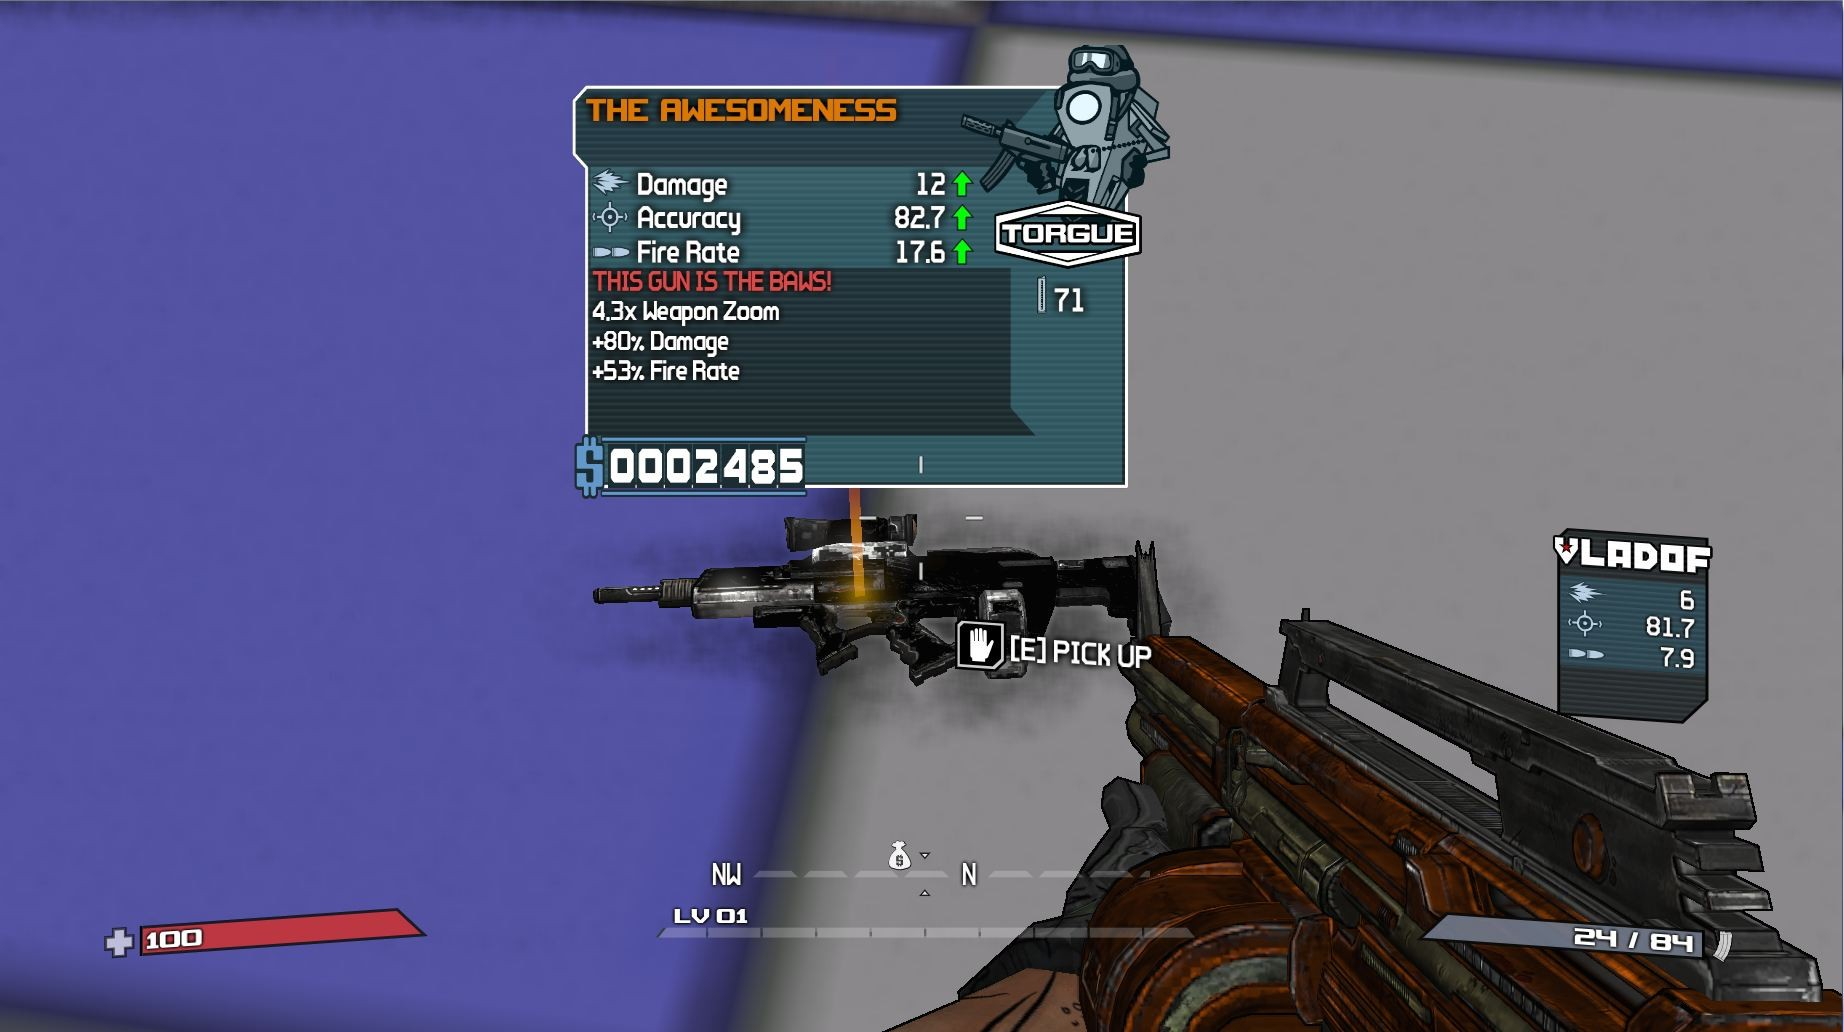 Val borderlands weapon editor download - mitmabore's blog